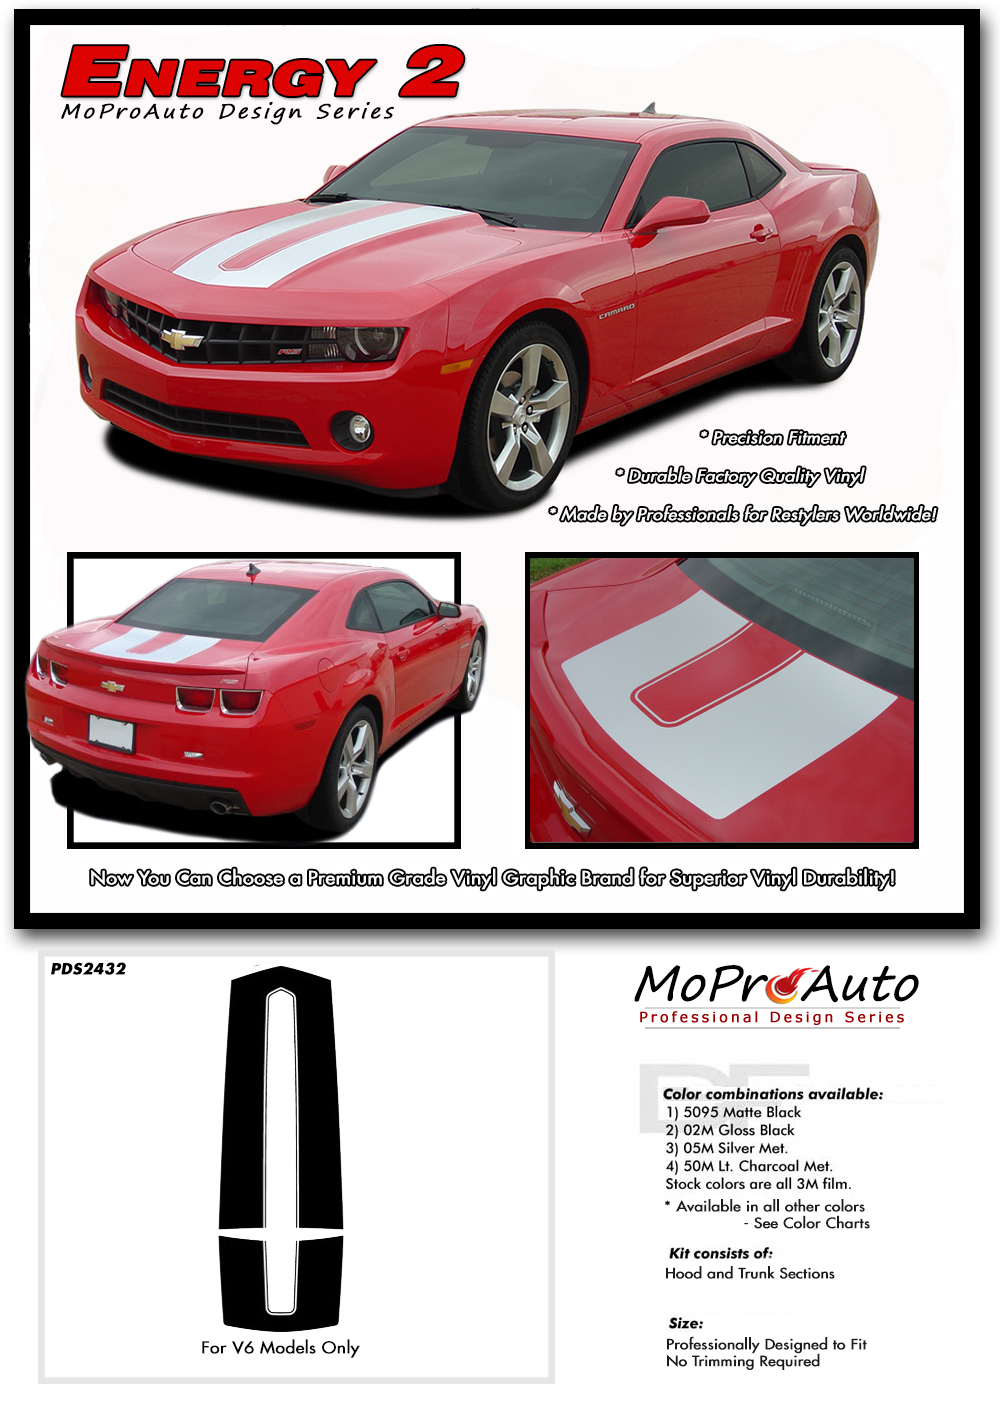 2014 Chevy Camaro Vinyl Graphics Kits, Decals, Stripes,